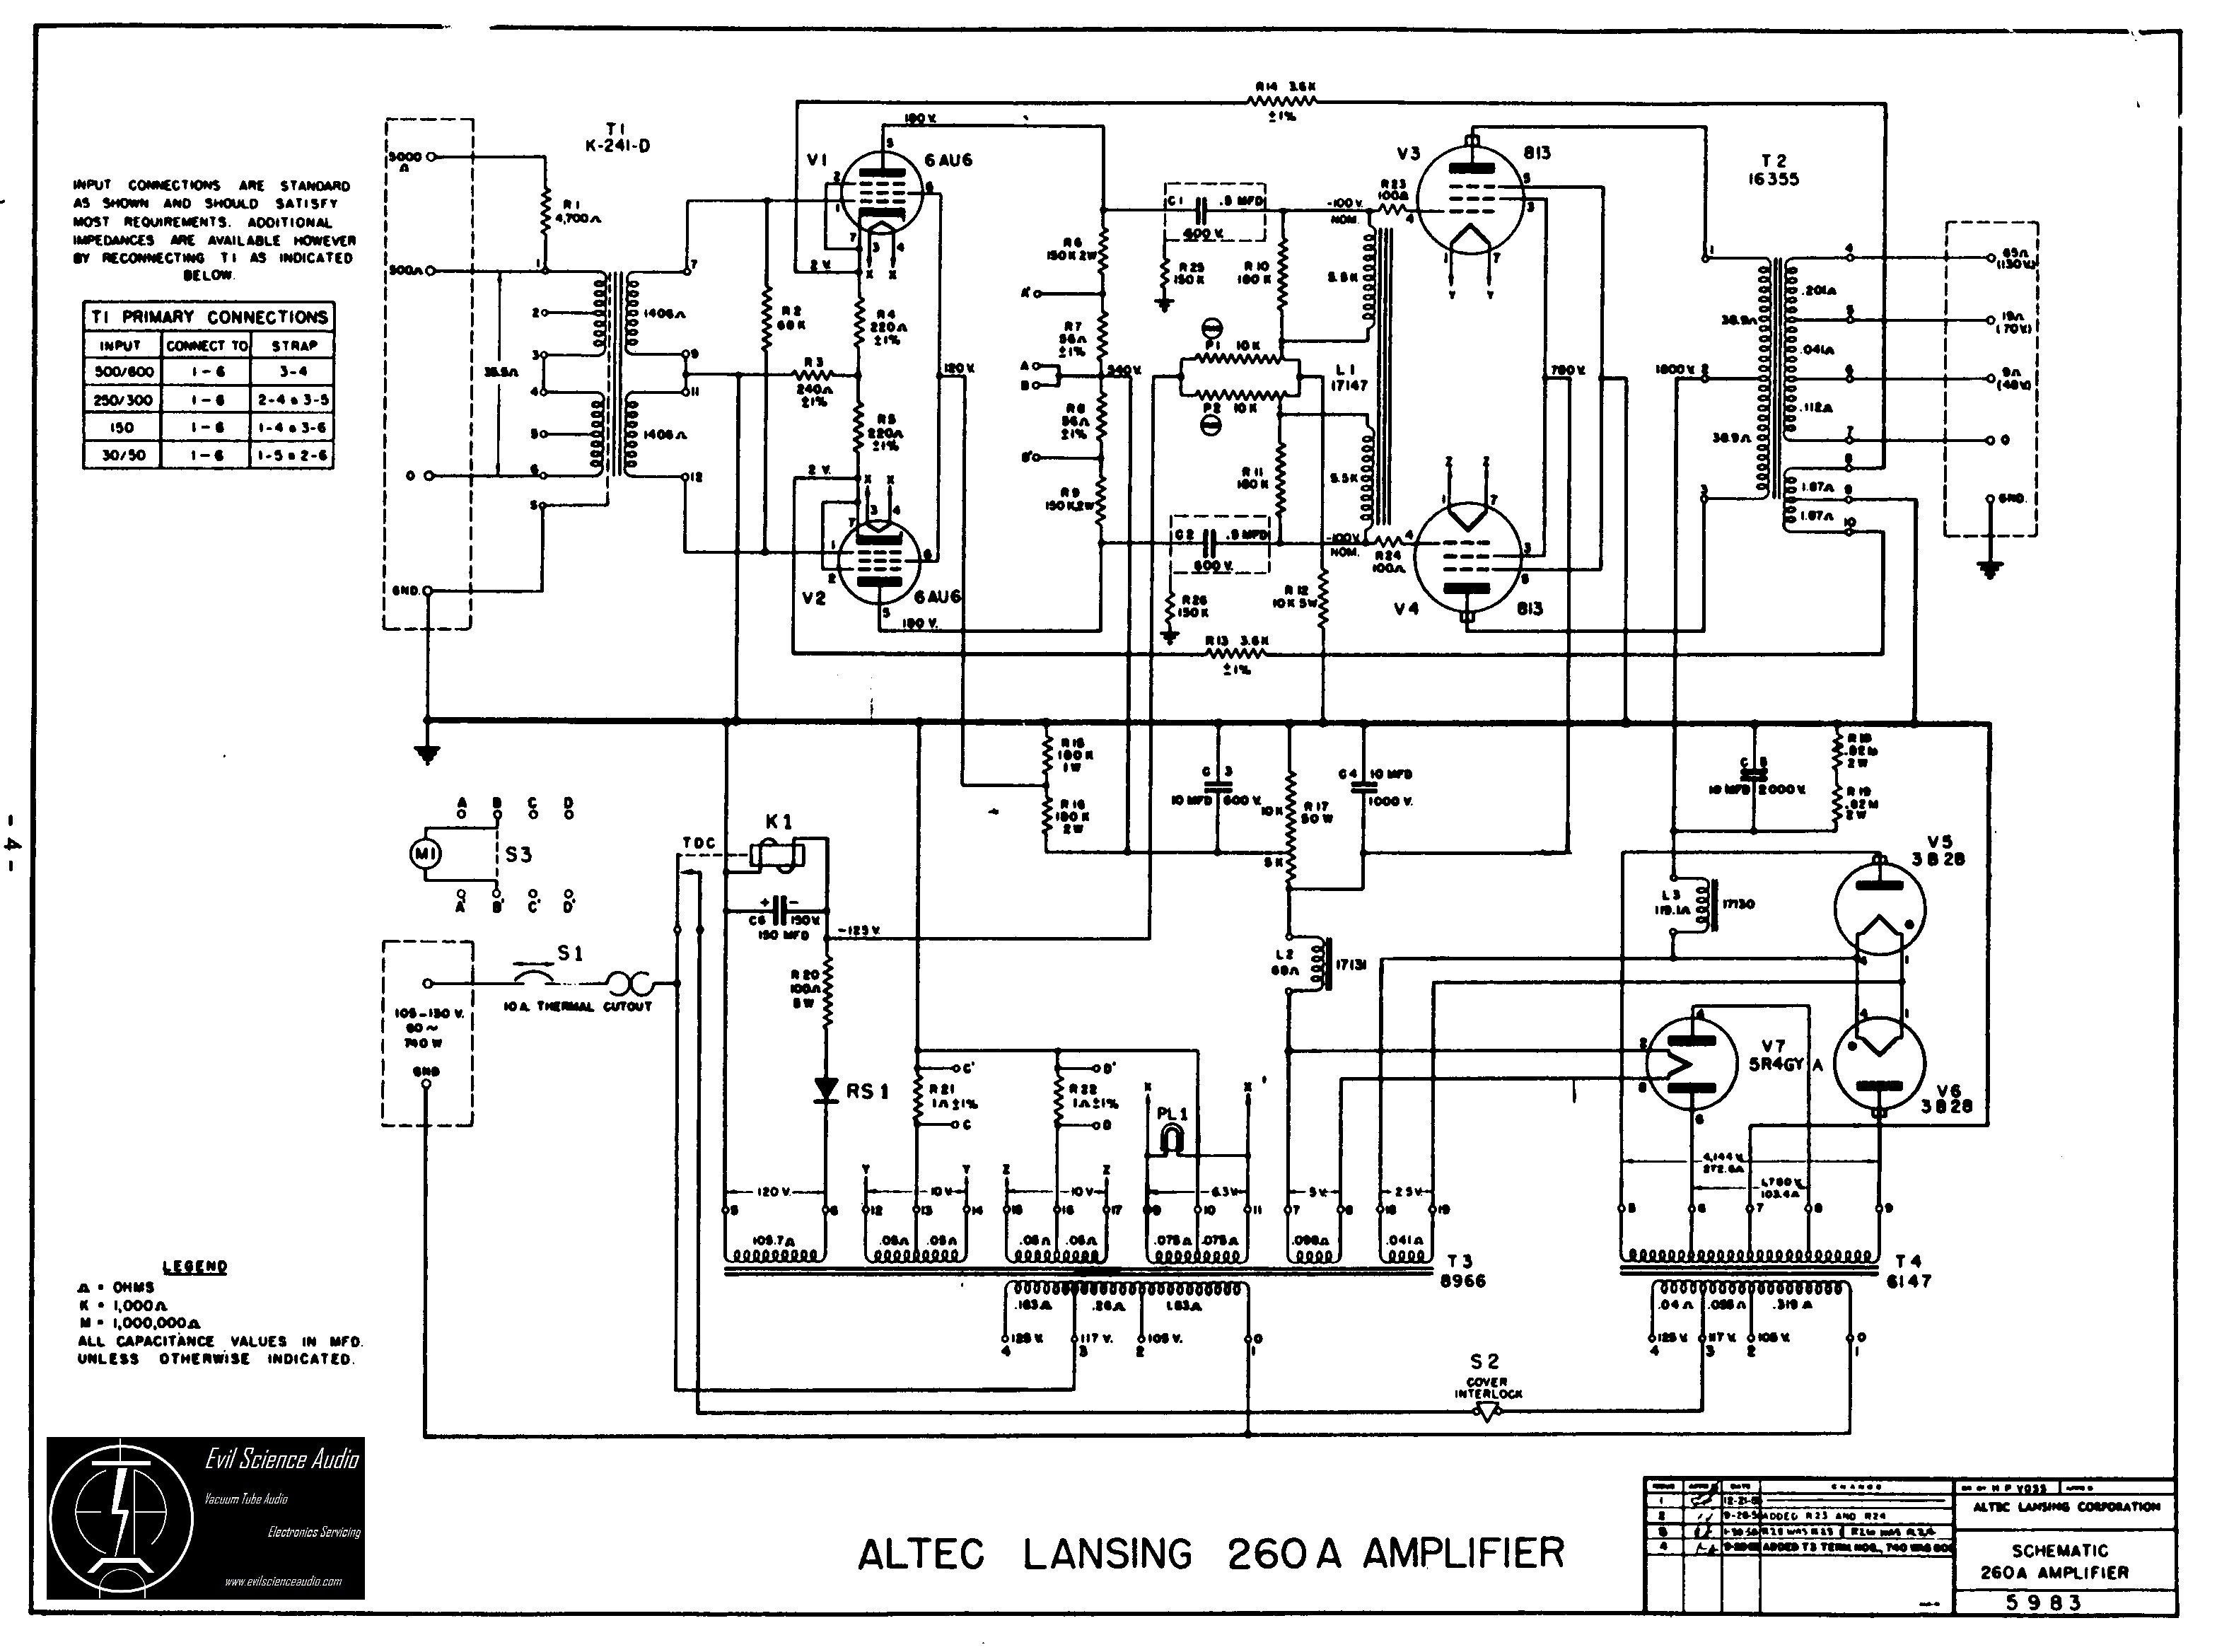 altec lansing 260a schematic hi fi schematics evil science audio Altec Bucket Wiring-Diagram at n-0.co